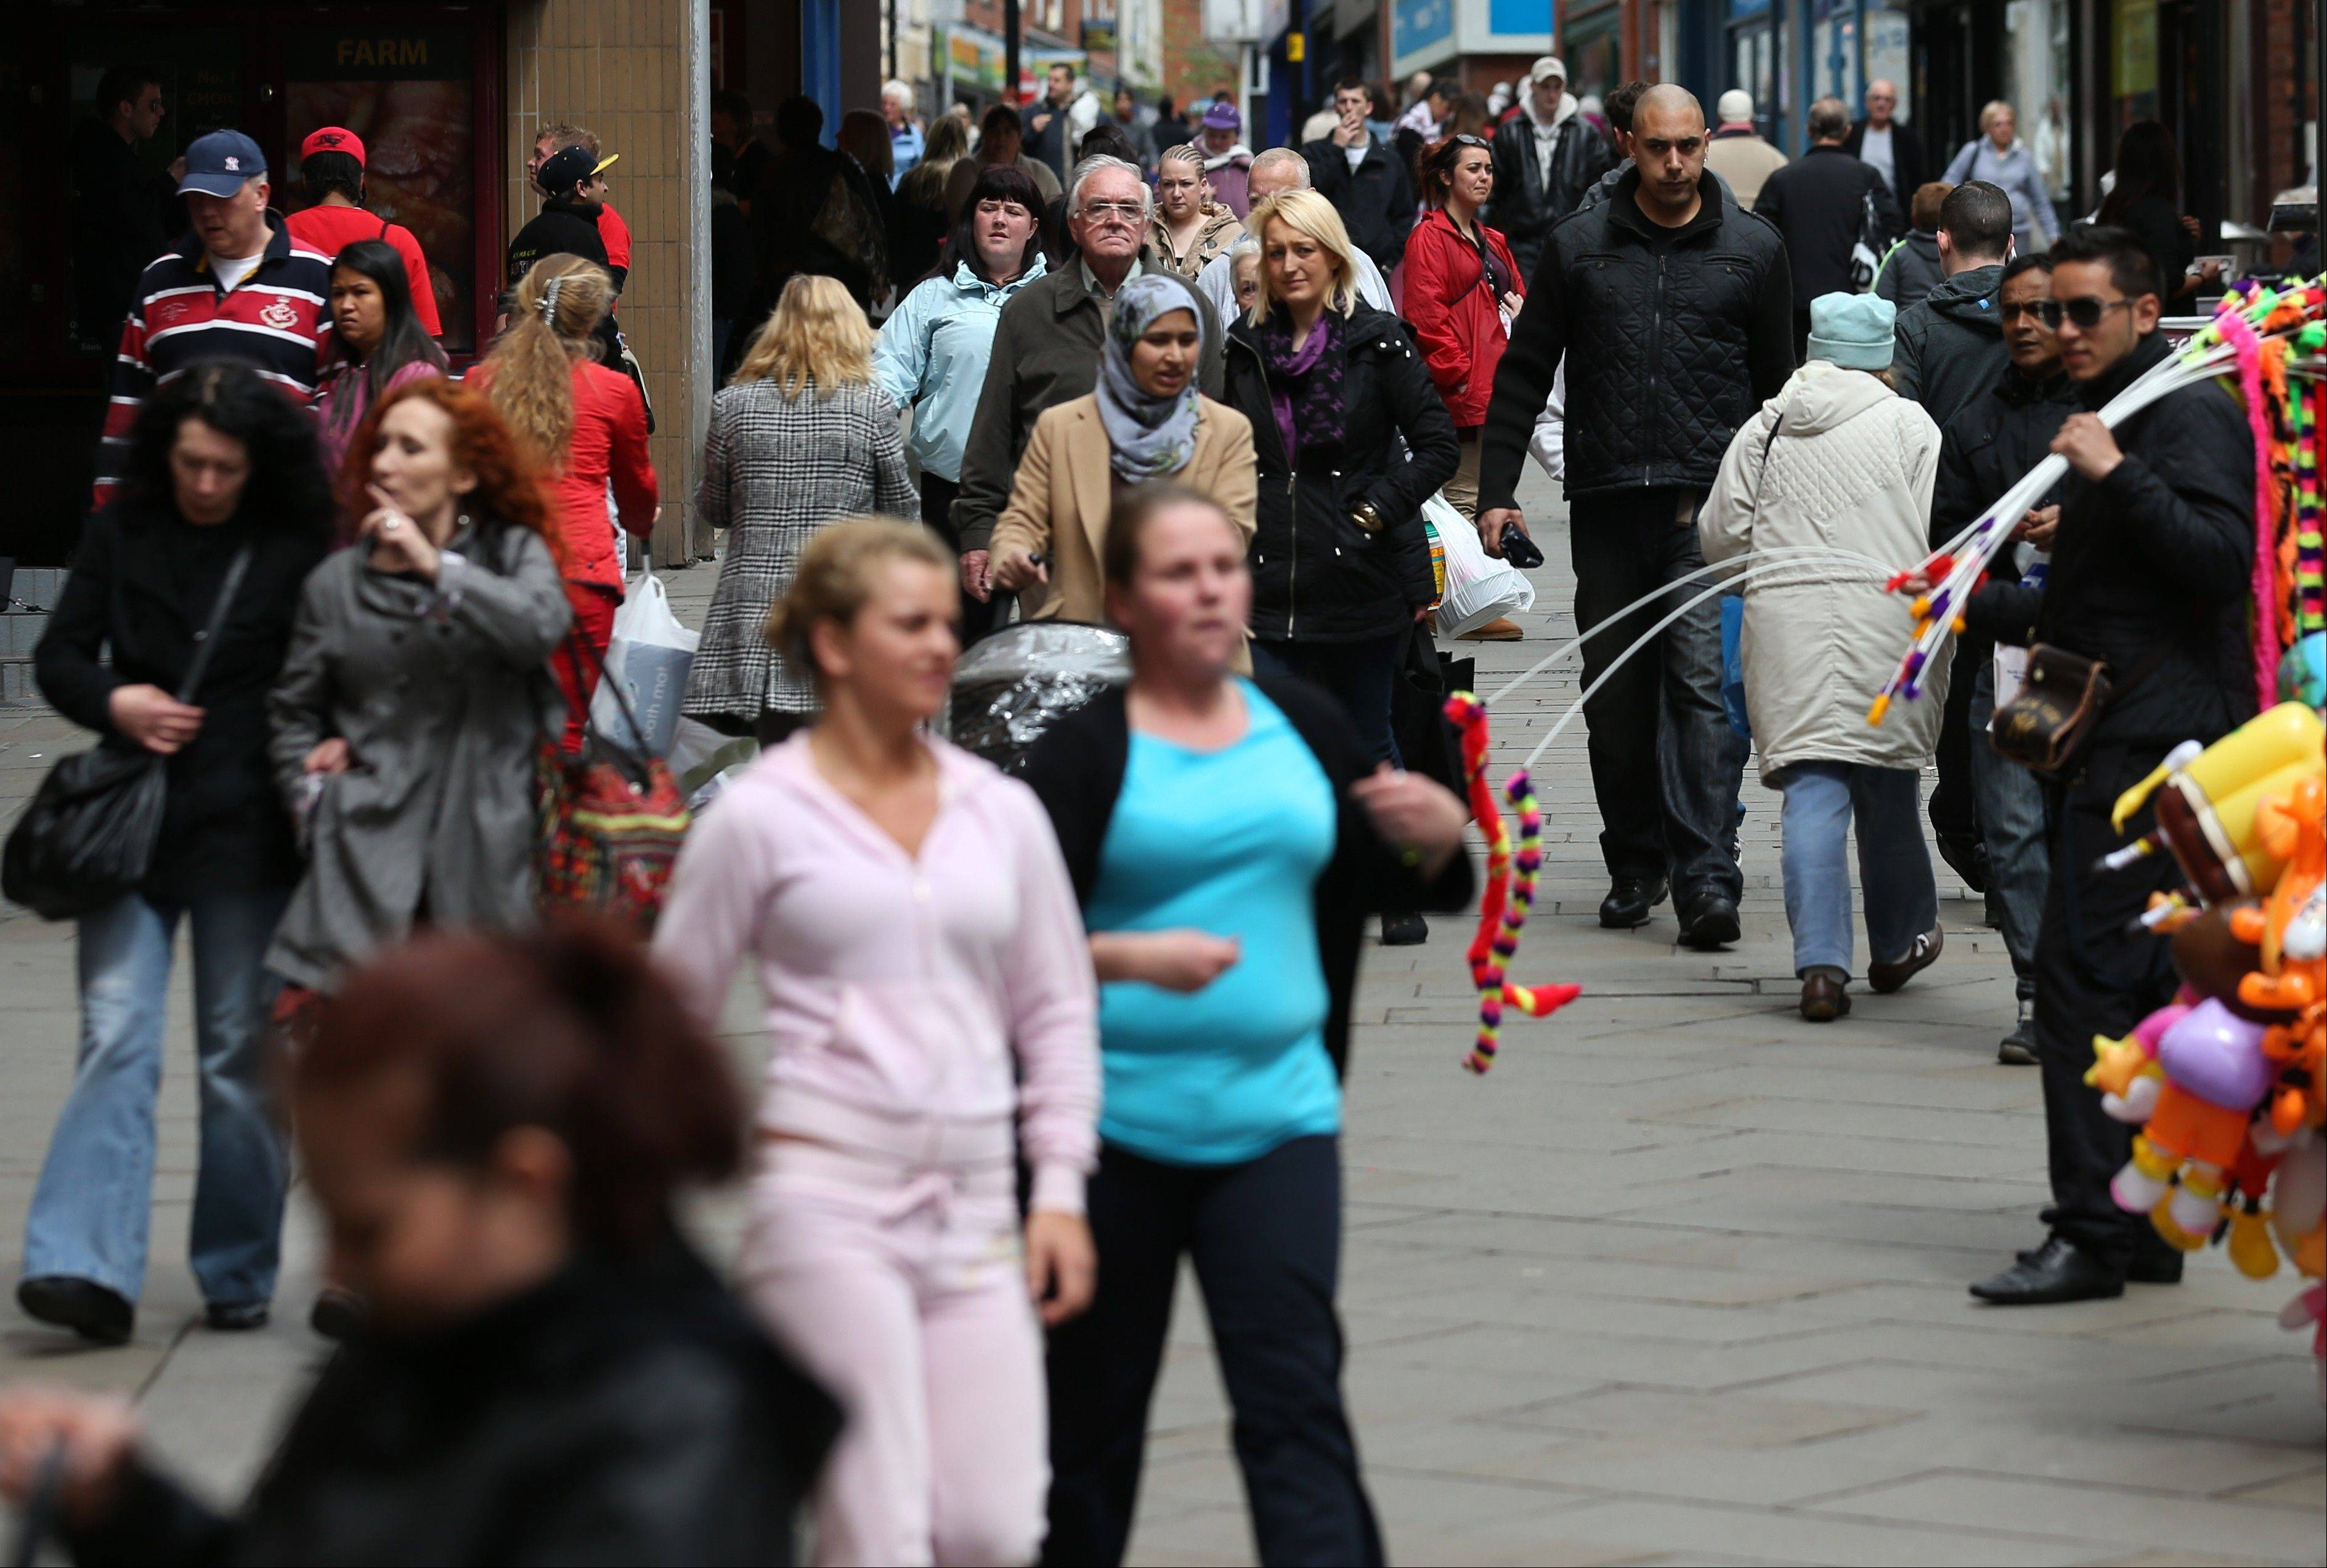 Pedestrians walk through Yorkshire Street in Rochdale, England. Nearly 1 million Pakistanis live in England -- far more than in any other European country -- with about 25,000 settled in the Greater Manchester area that includes Rochdale.